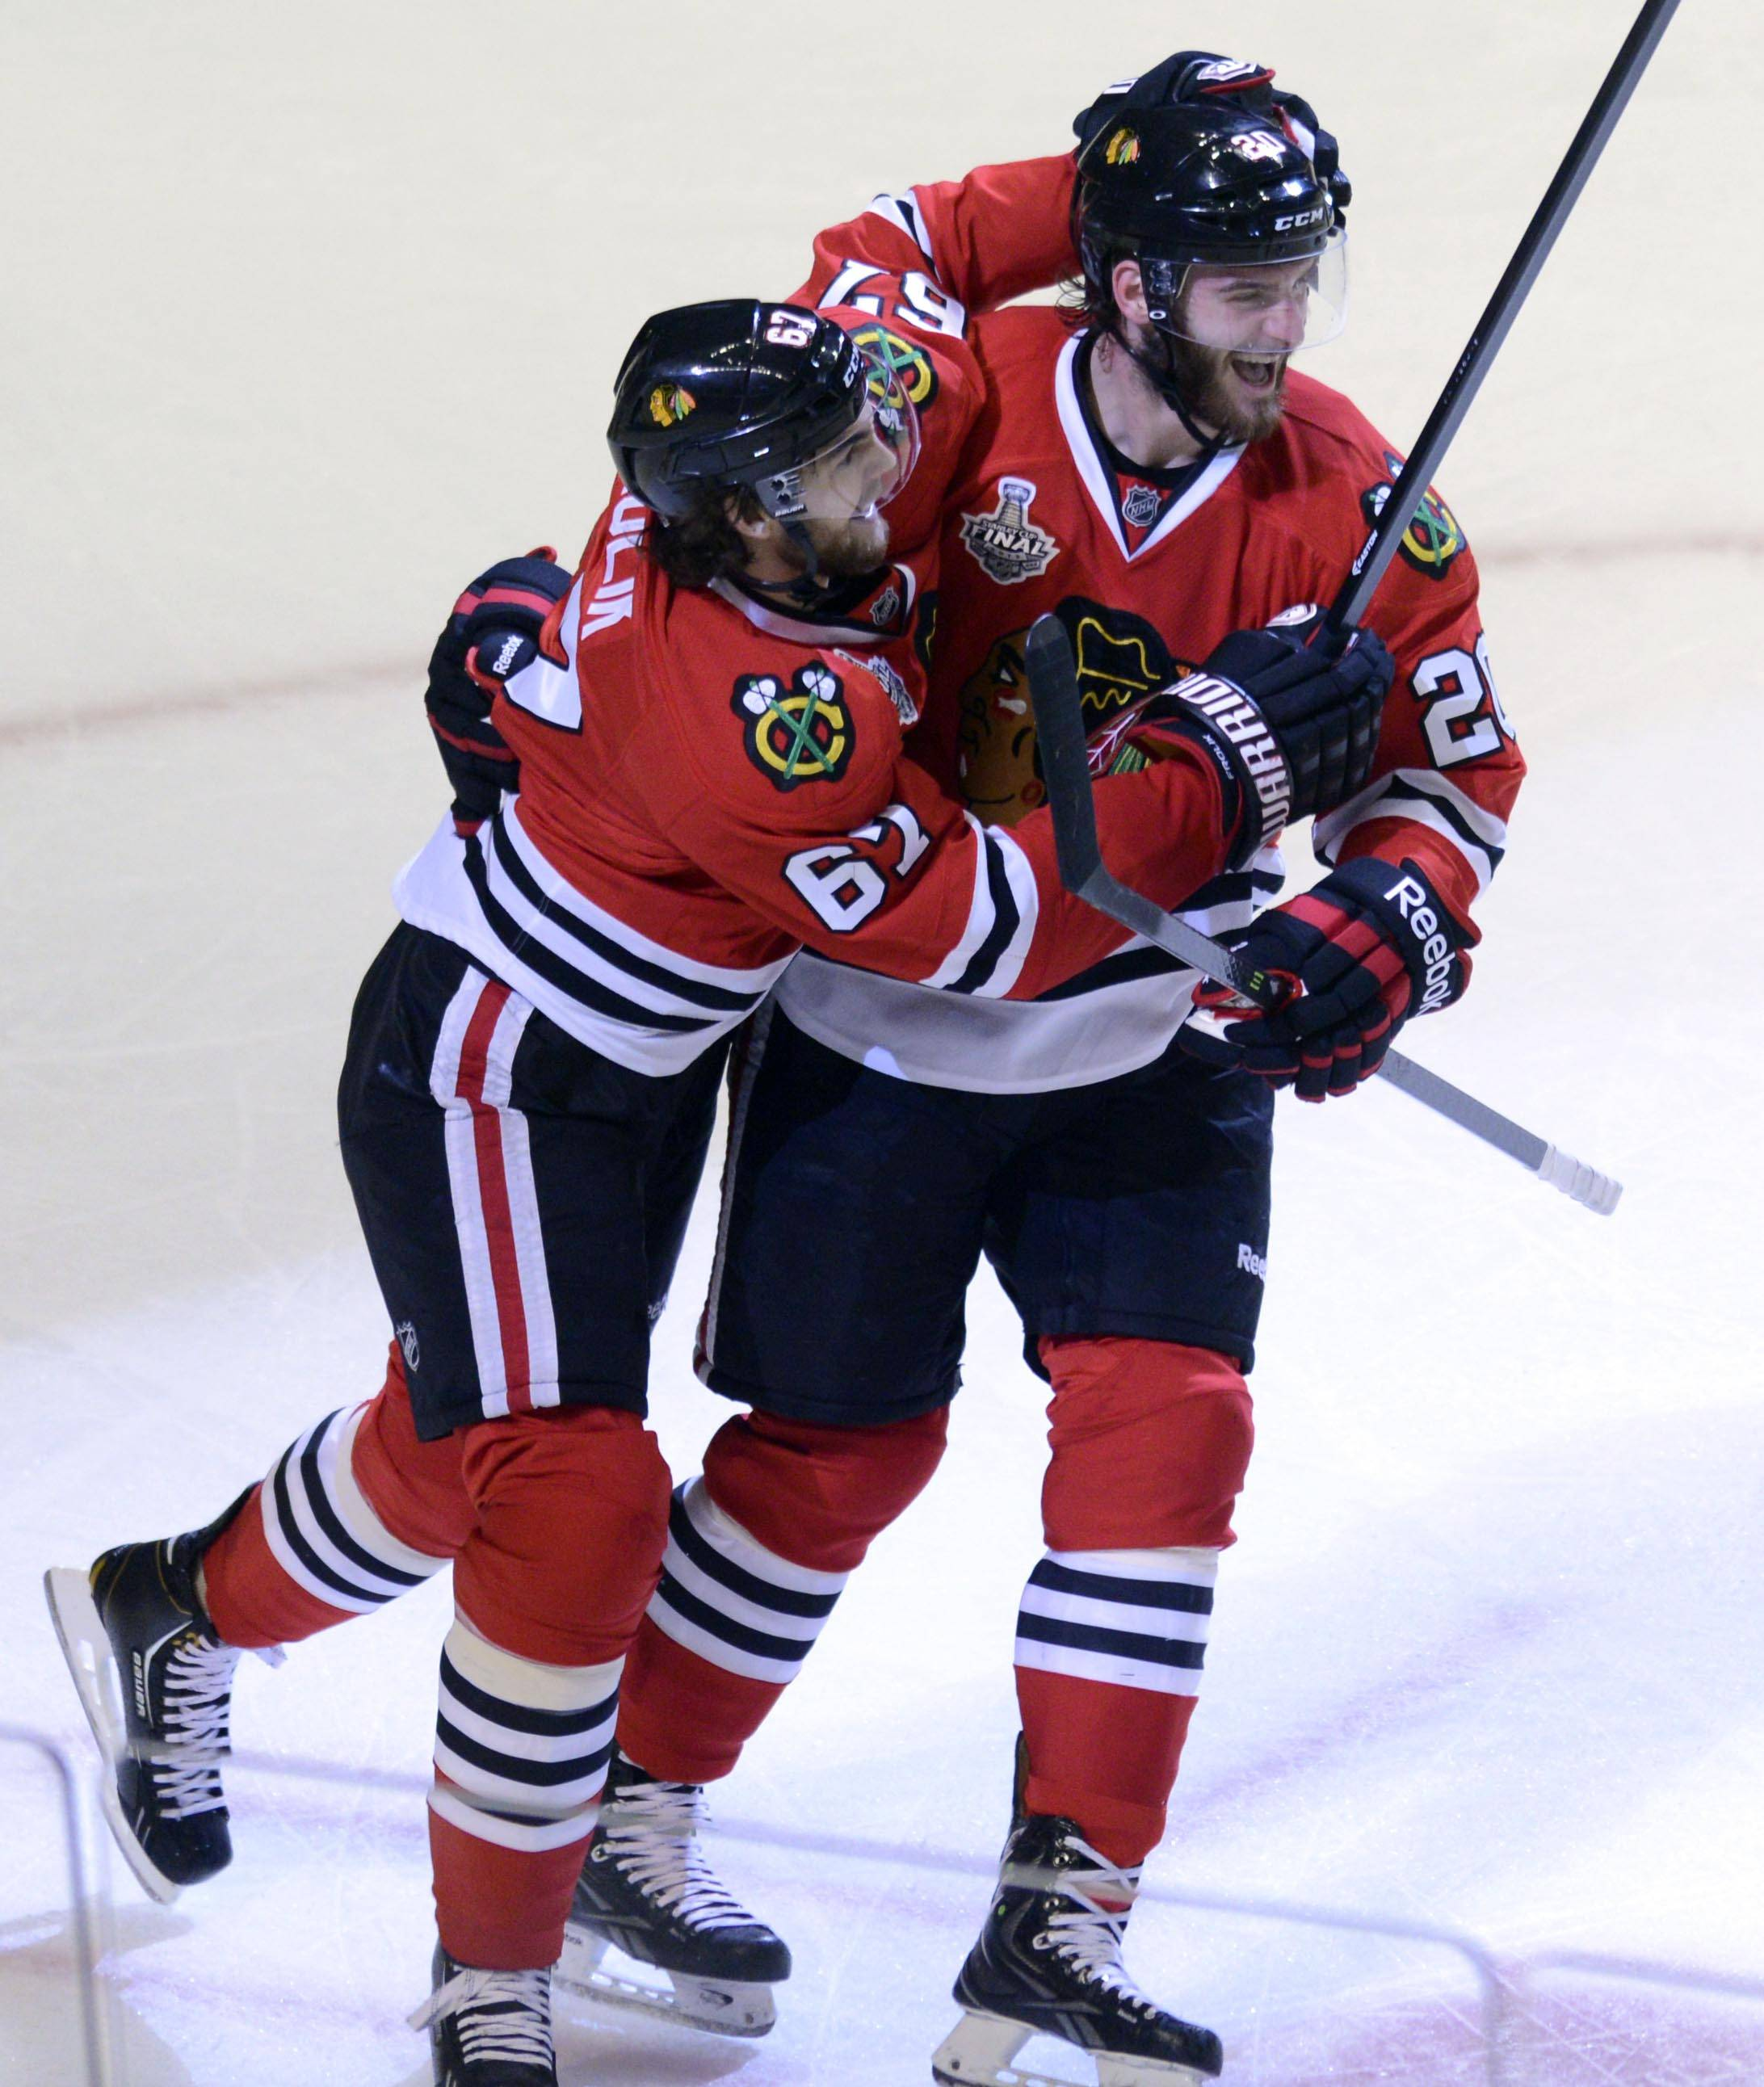 Chicago Blackhawks center Michael Frolik  and left wing Brandon Saad celebrate the tying goal in regulation against the Boston Bruins during Game 1 of the Stanley Cup Finals Wednesday at the Untied Center in Chicago.